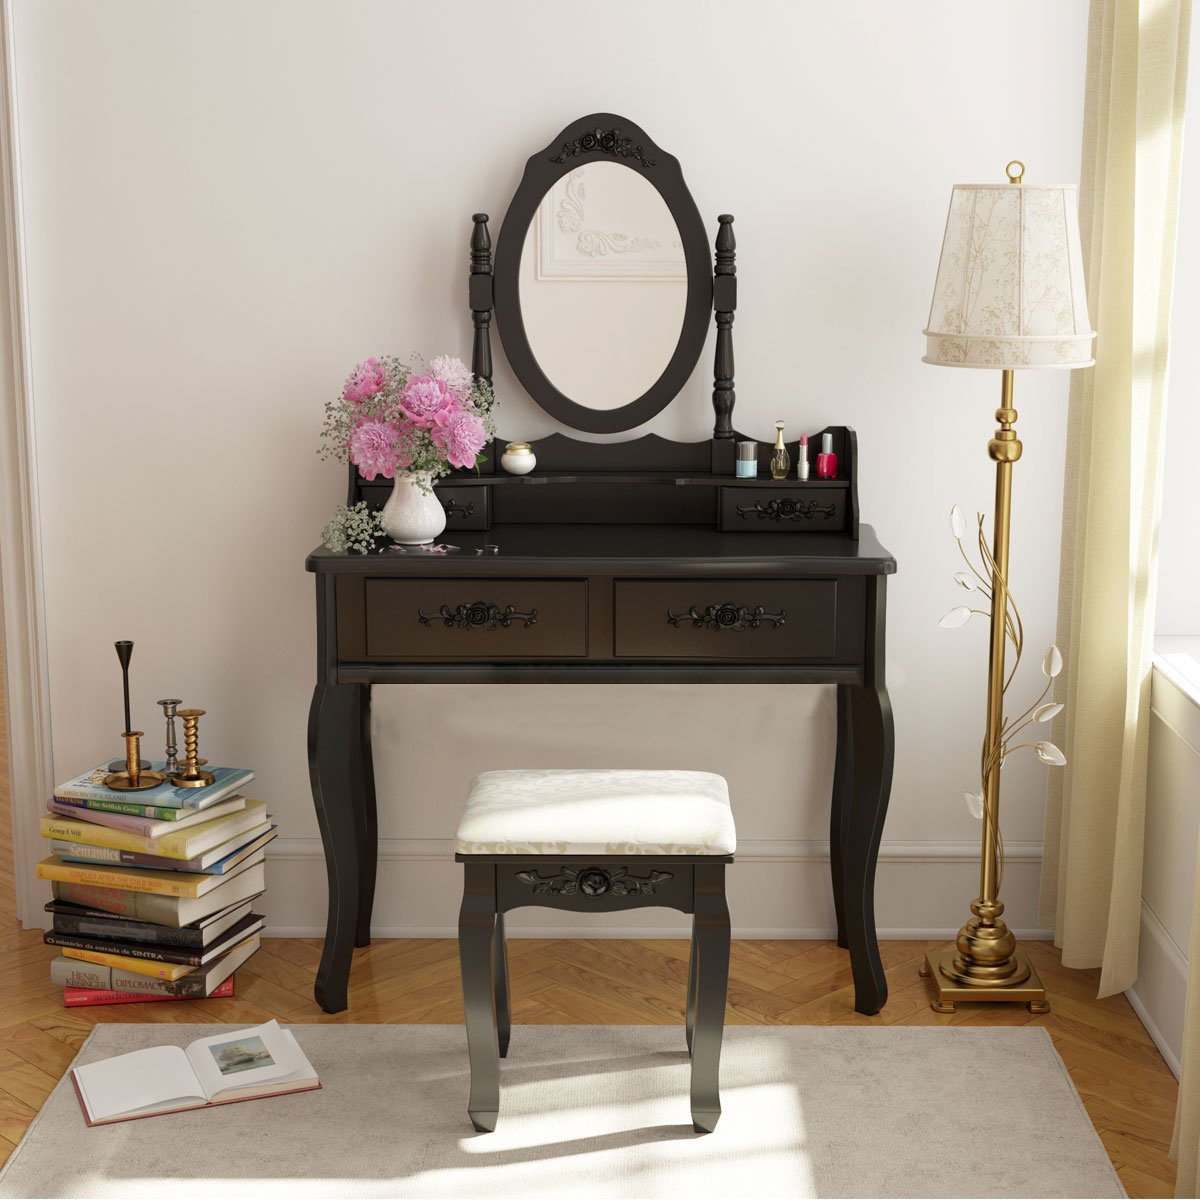 Vanity makeup dressing jewelry 4 drawer table set w stool for Black makeup table with mirror